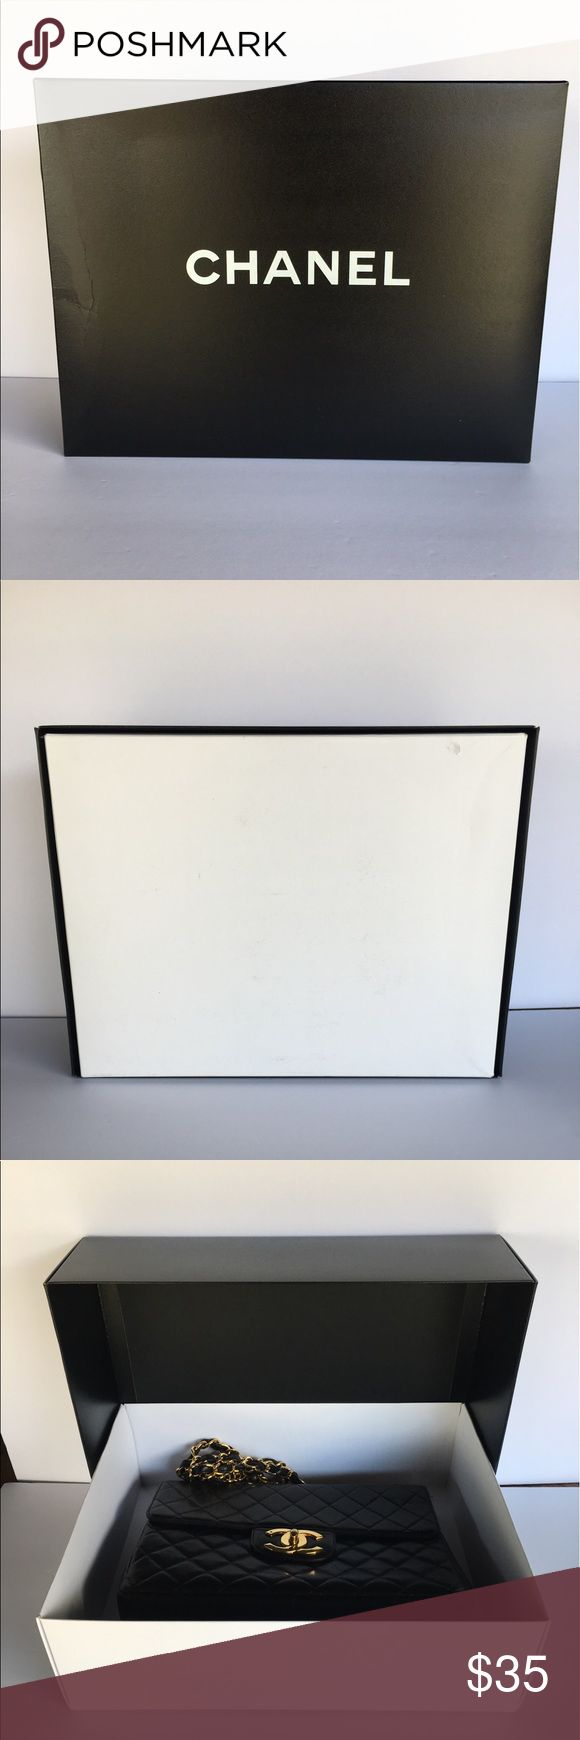 Chanel maxi or large bag empty box 15x12x4.5 Empty chanel gift box for large bag maxi coco handle   Used pre-owned condition may have minor imperfections on box. Damage to the top on the corner.  15.5x12x4 CHANEL Bags